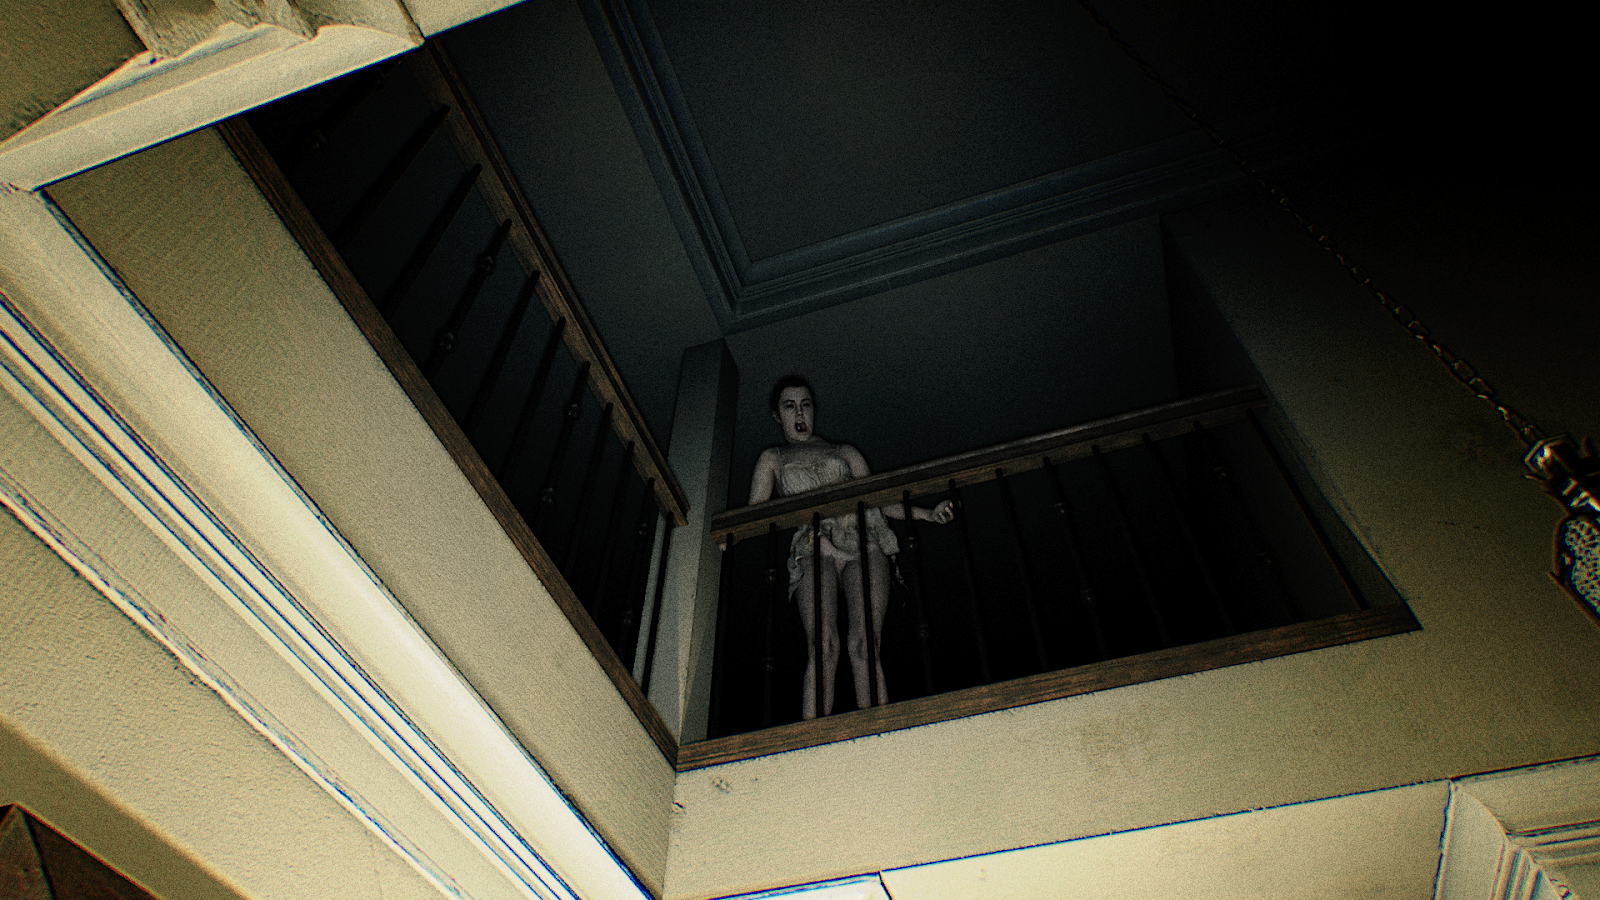 Fan-Made PT Remake Captures The Original's Terrifying Scares